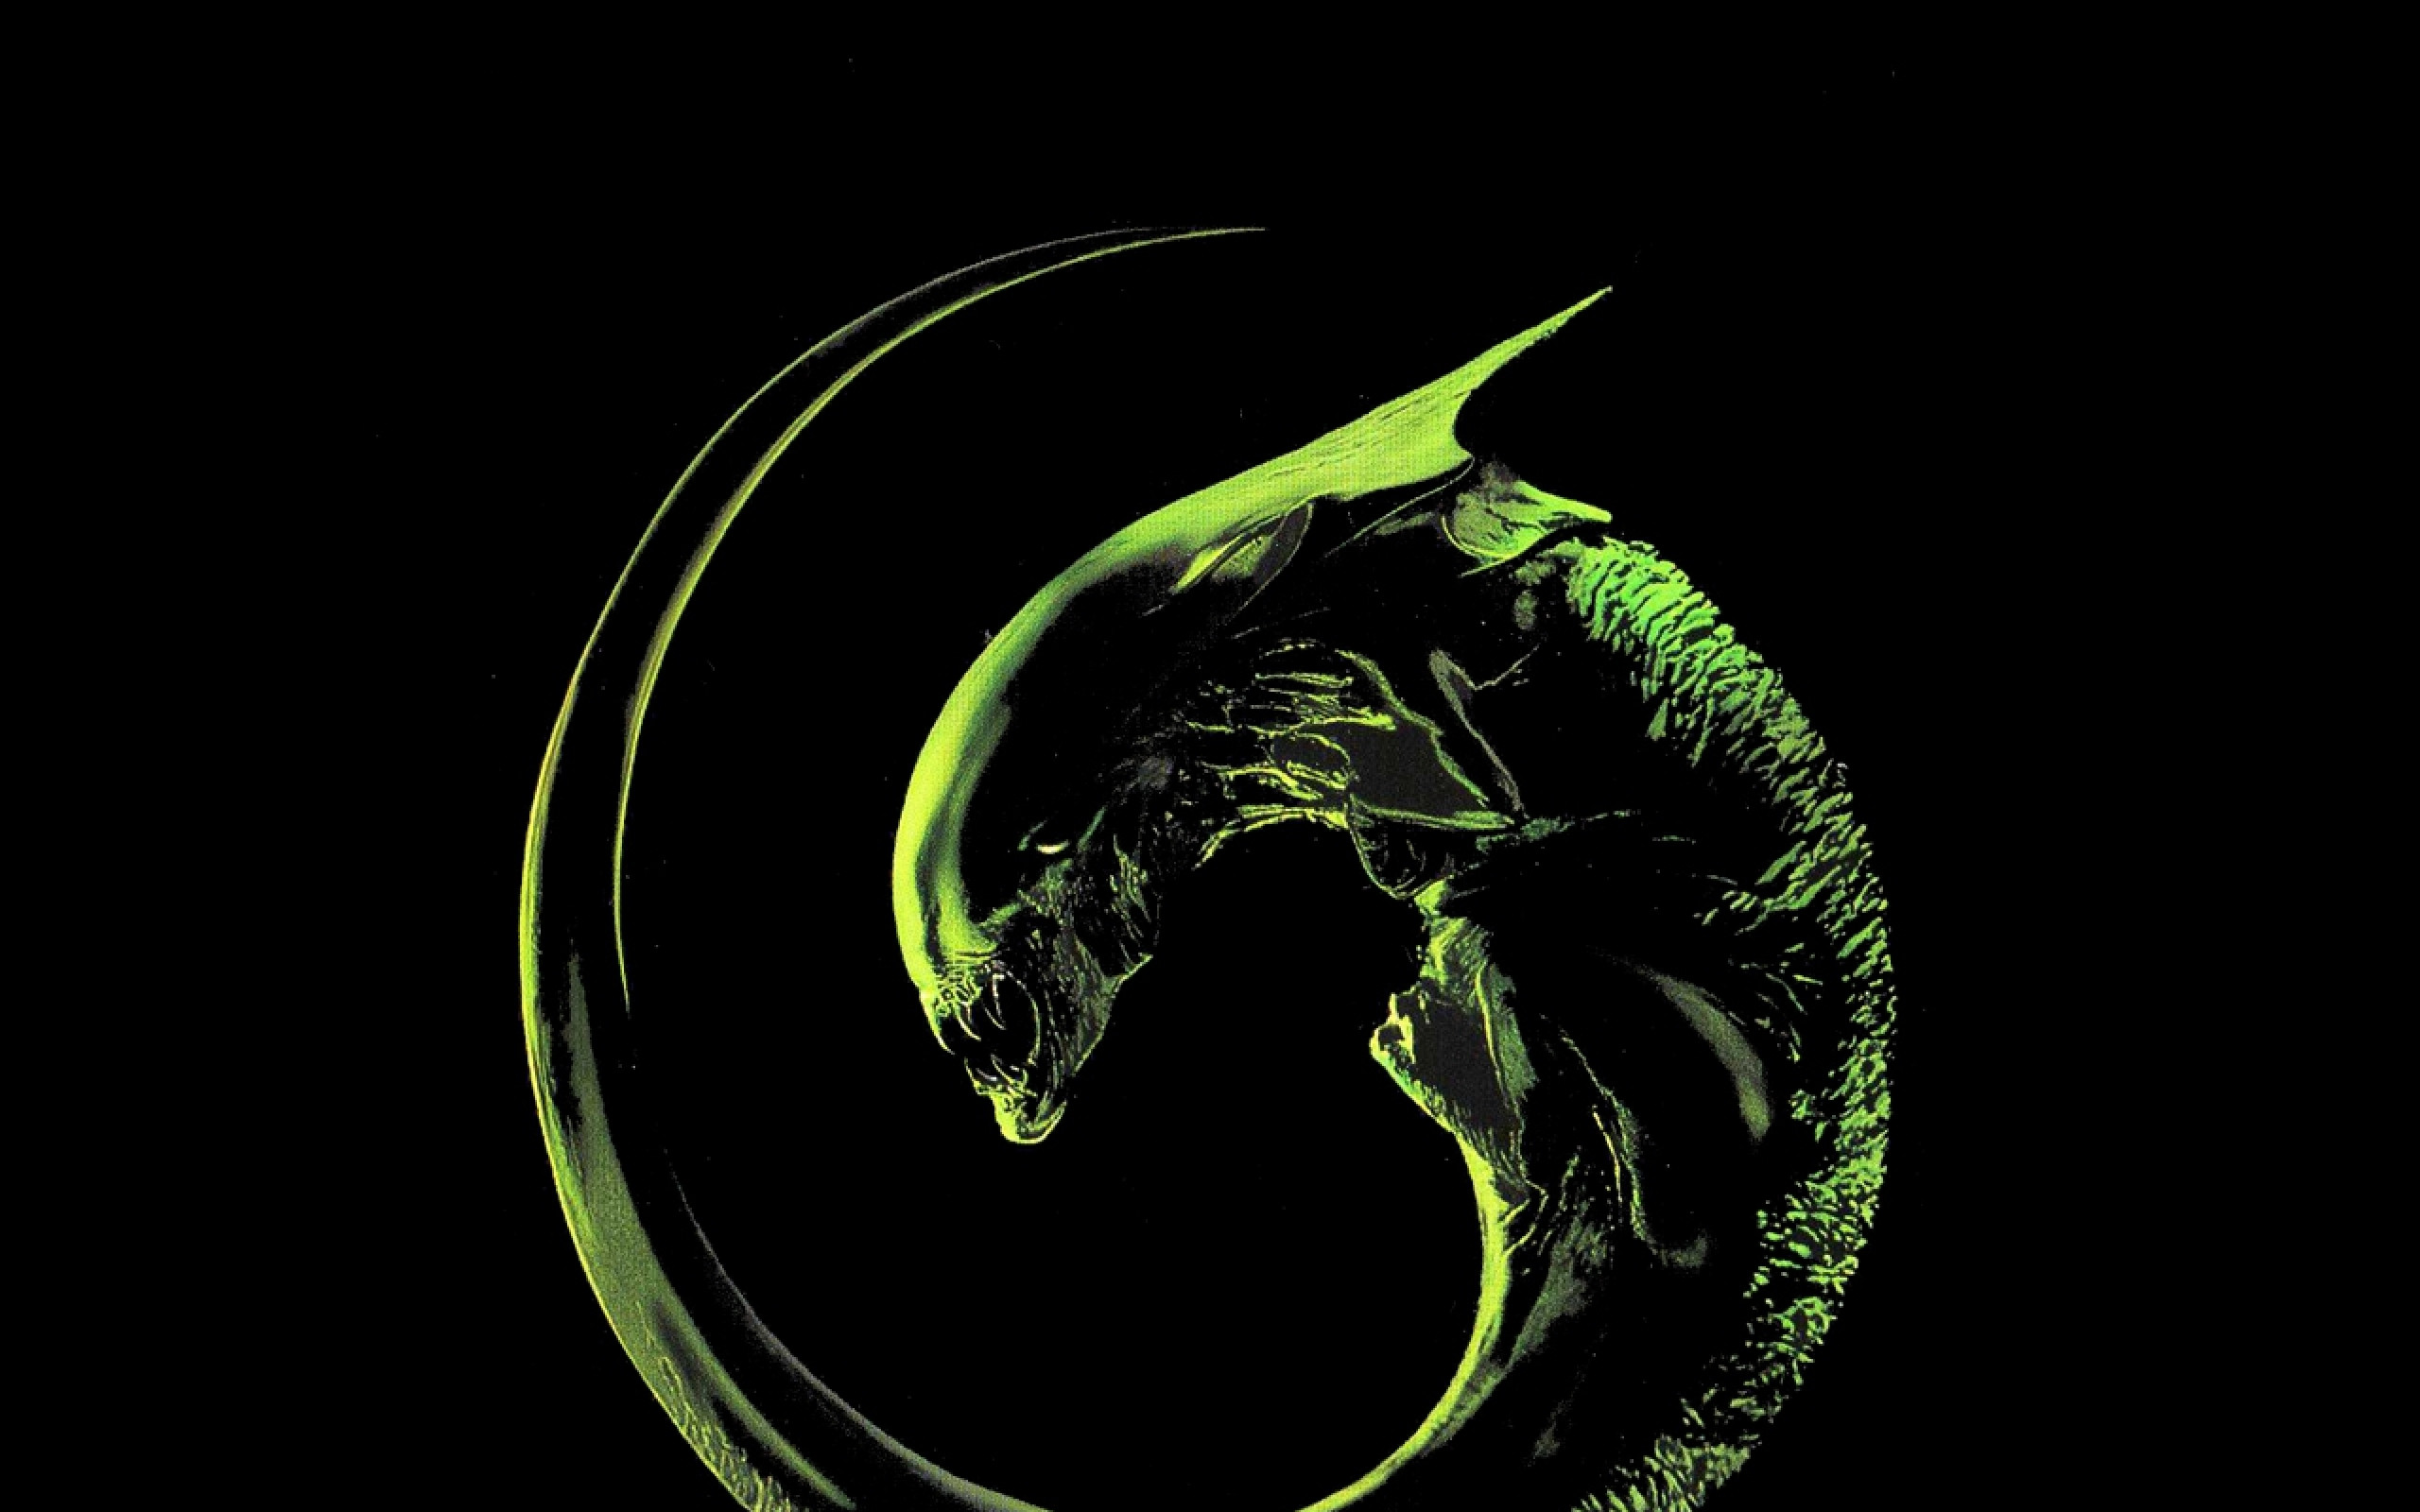 Alien Backgrounds Download 2560x1600